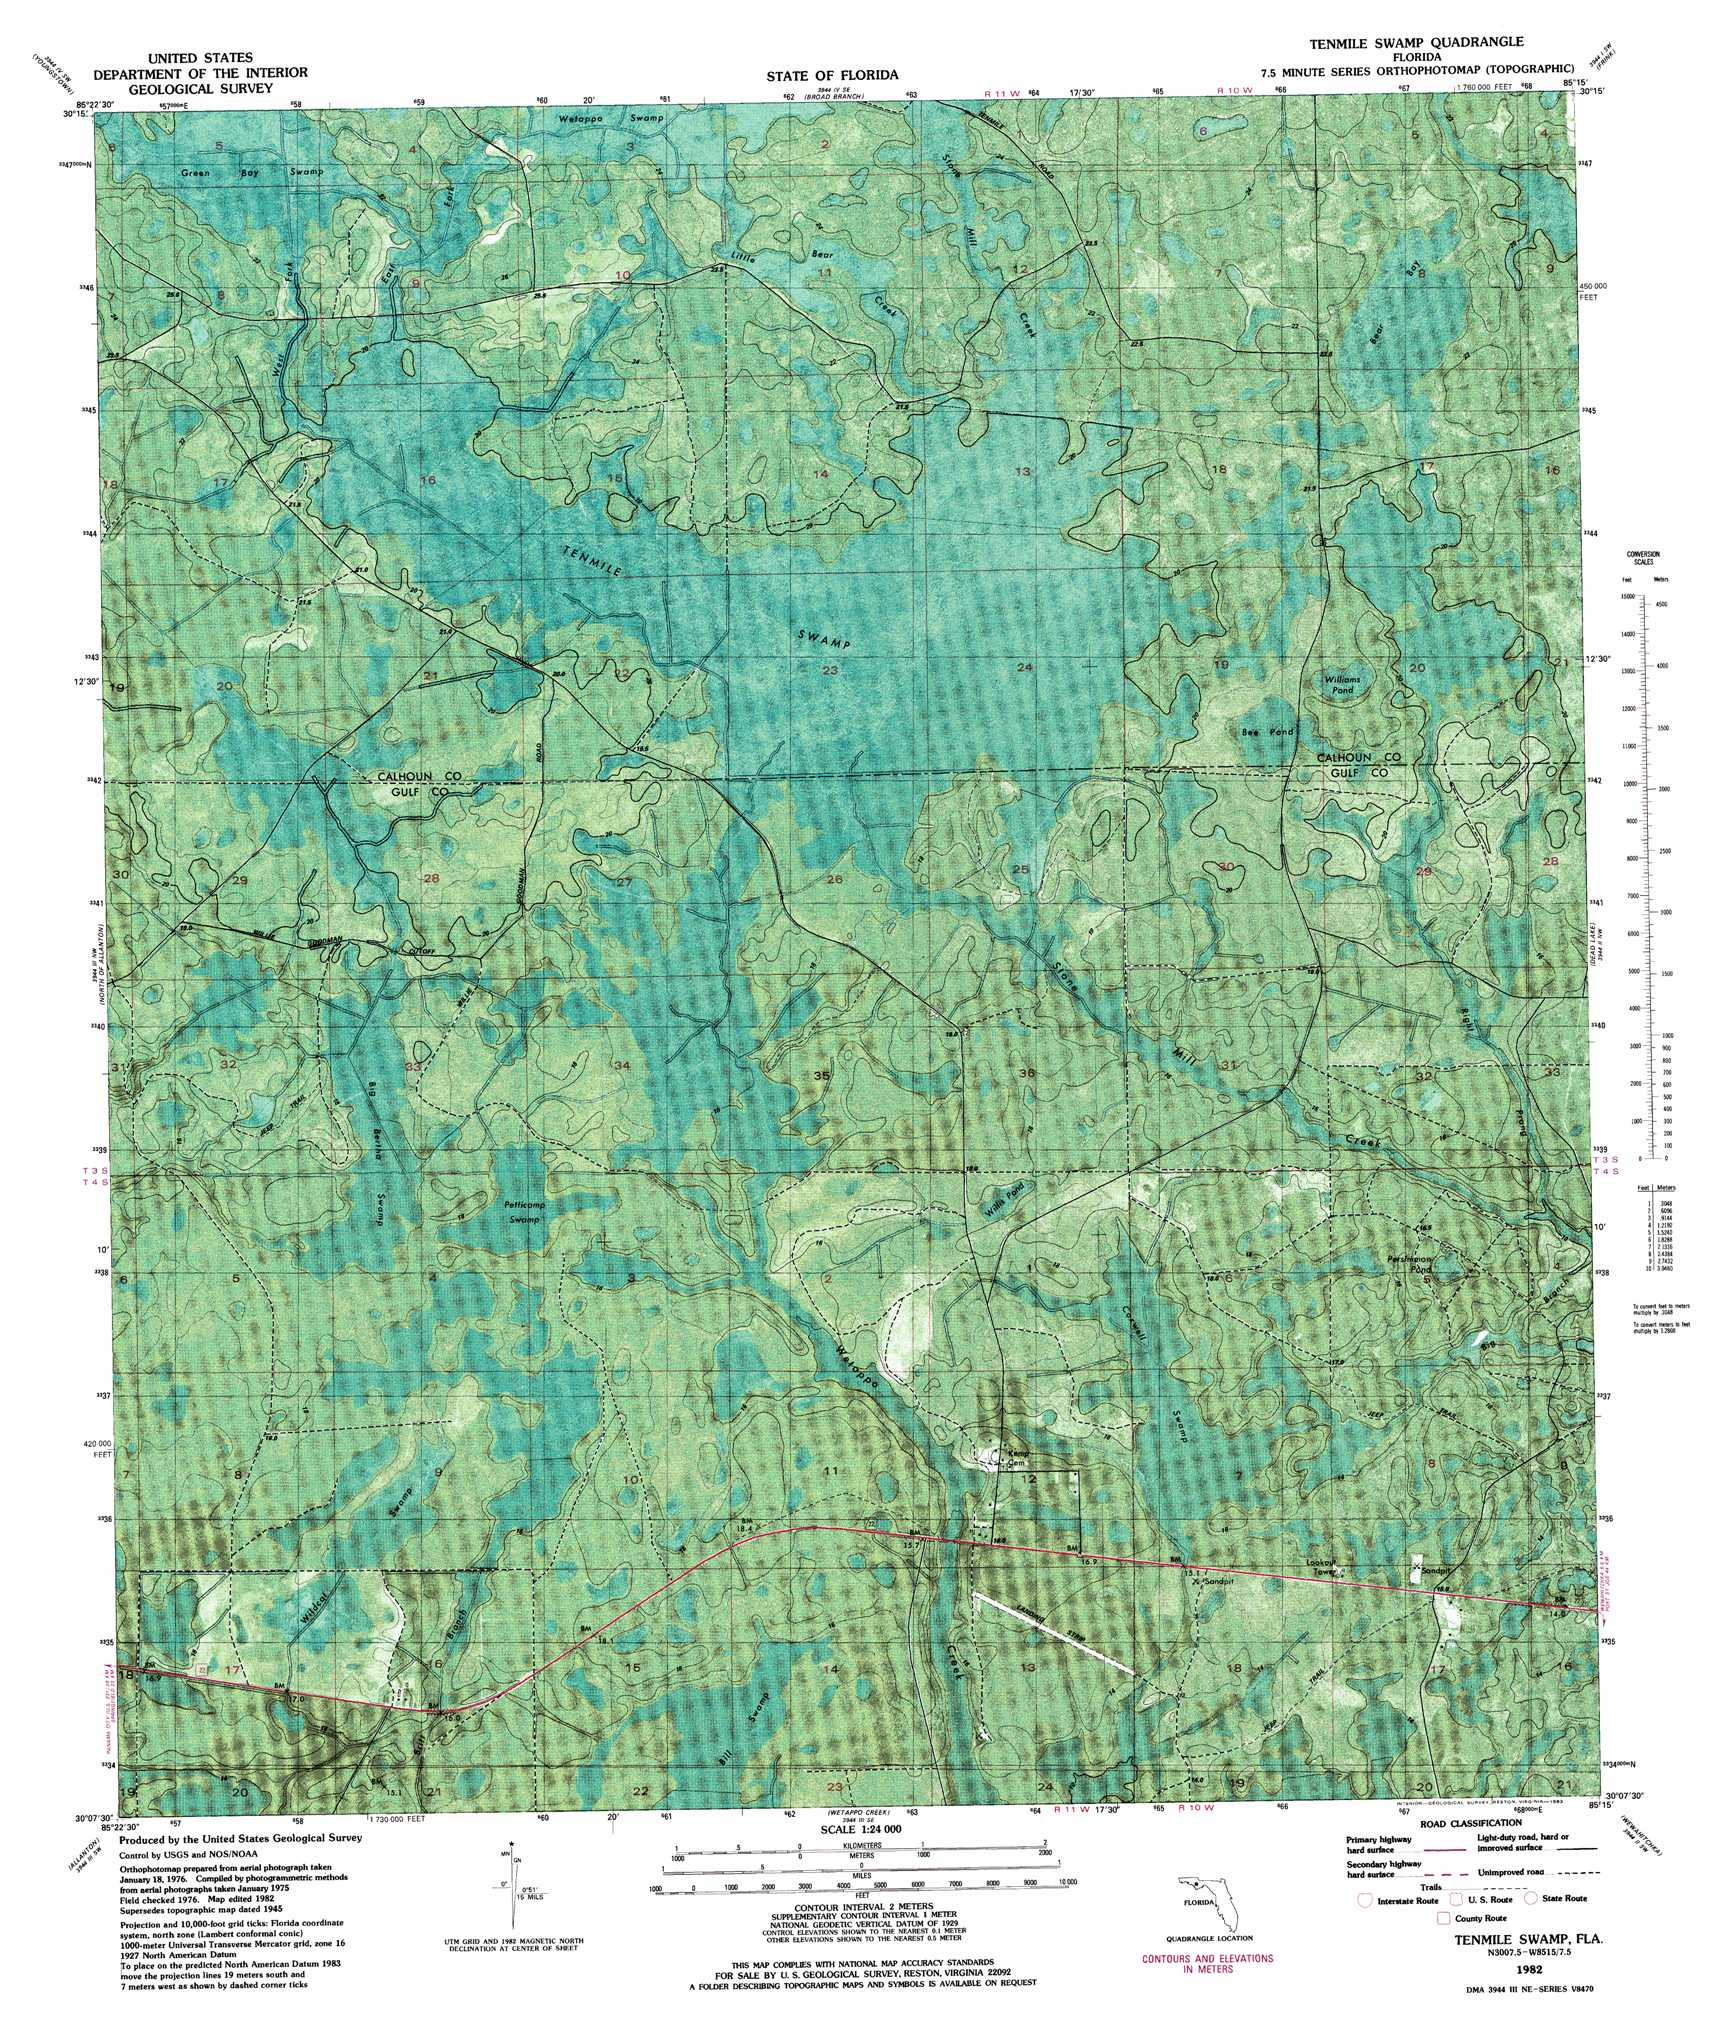 USGS HydroSHEDS William Cronon  Handout  Introduction To - Topographic map of us states